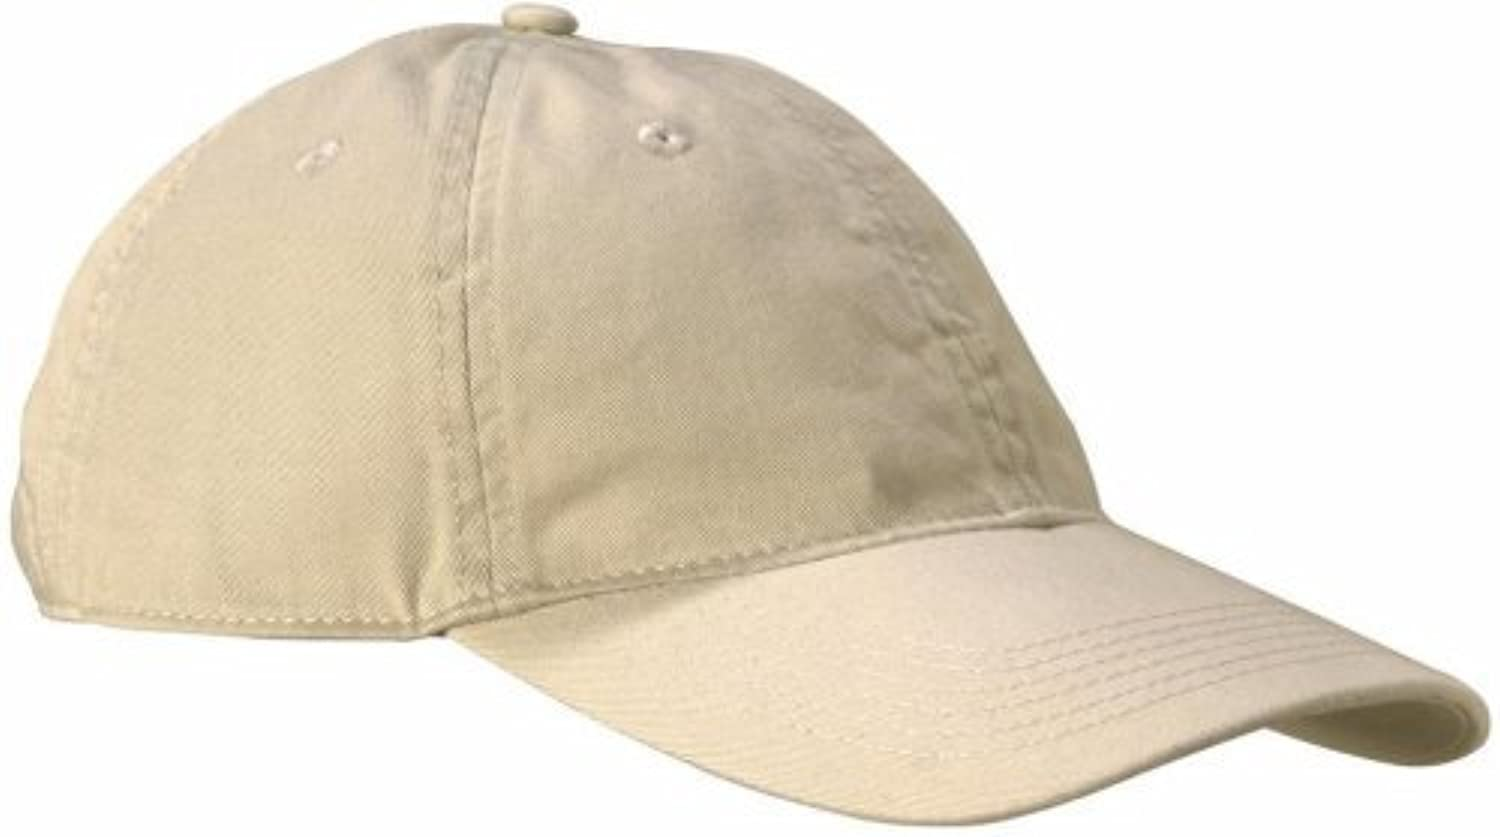 ECOnscious 100% Organic Cotton Twill Baseball Hat (Oyster) by econscious